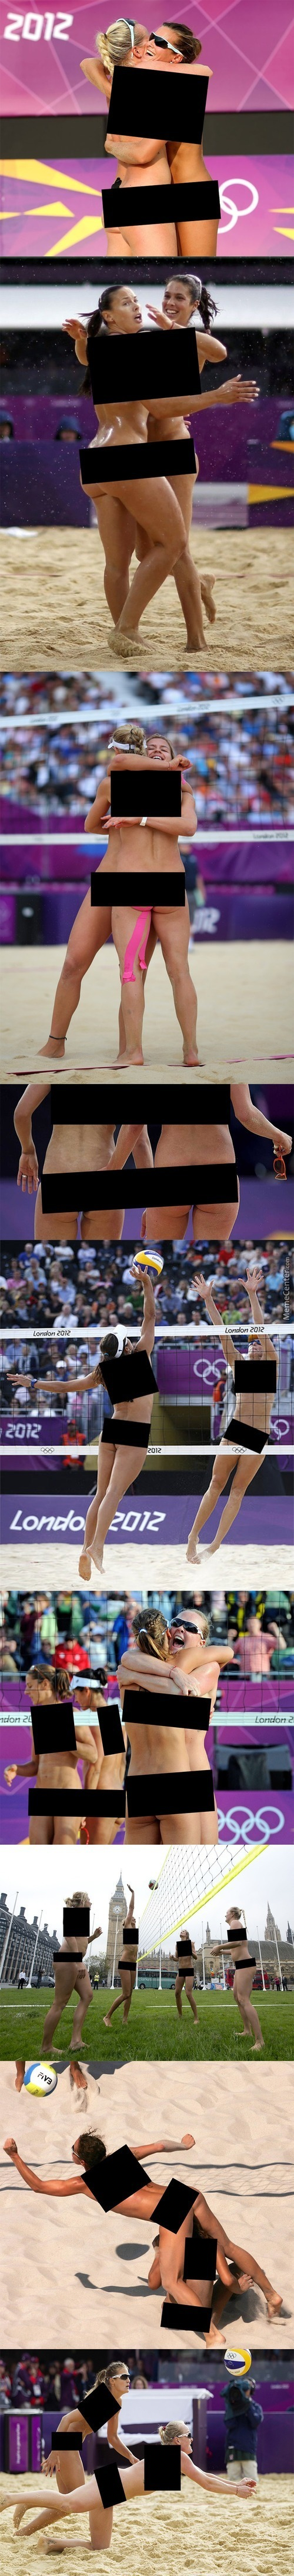 Beach Volleyball + Unnecessary Censorship = Hue Hue Hue